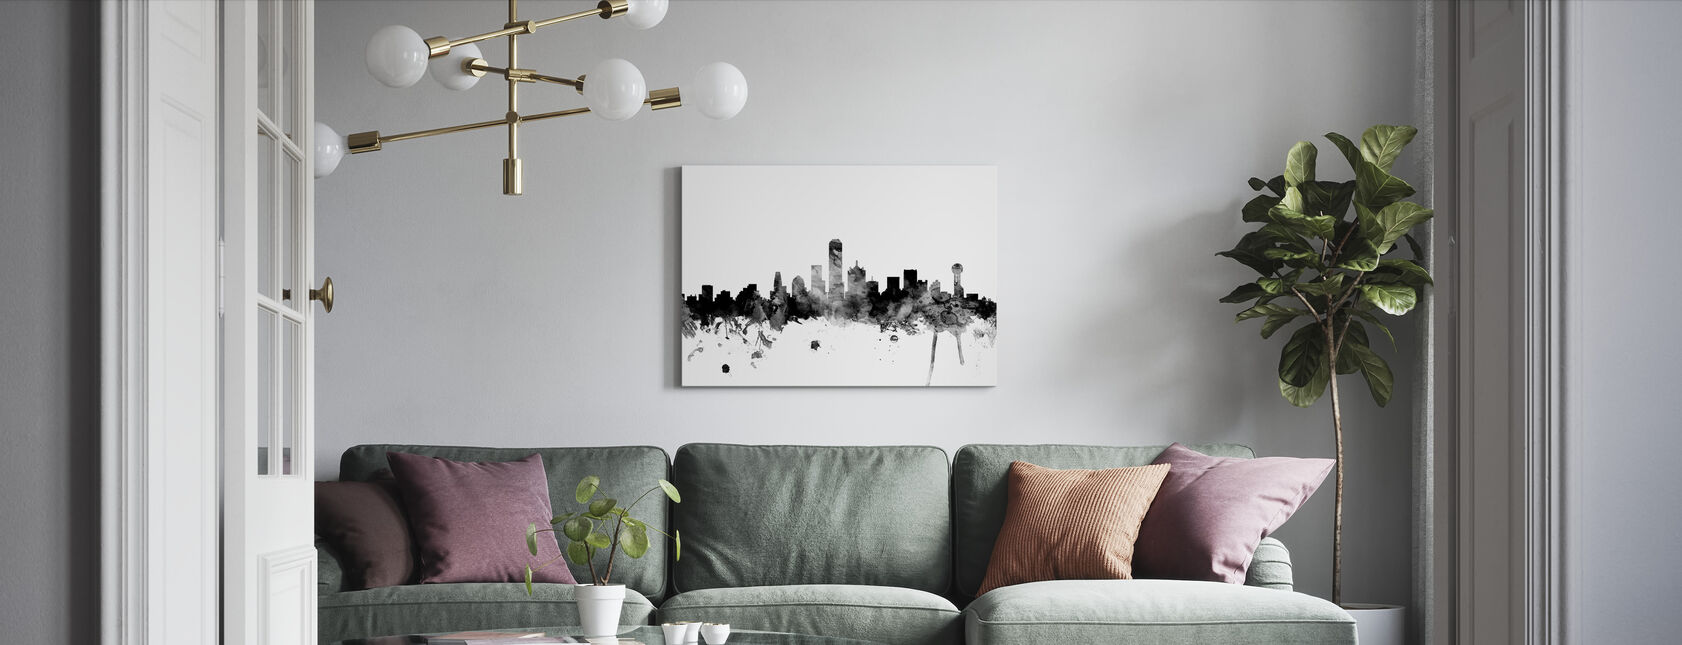 Dallas Texas Skyline Black - Canvas print - Living Room